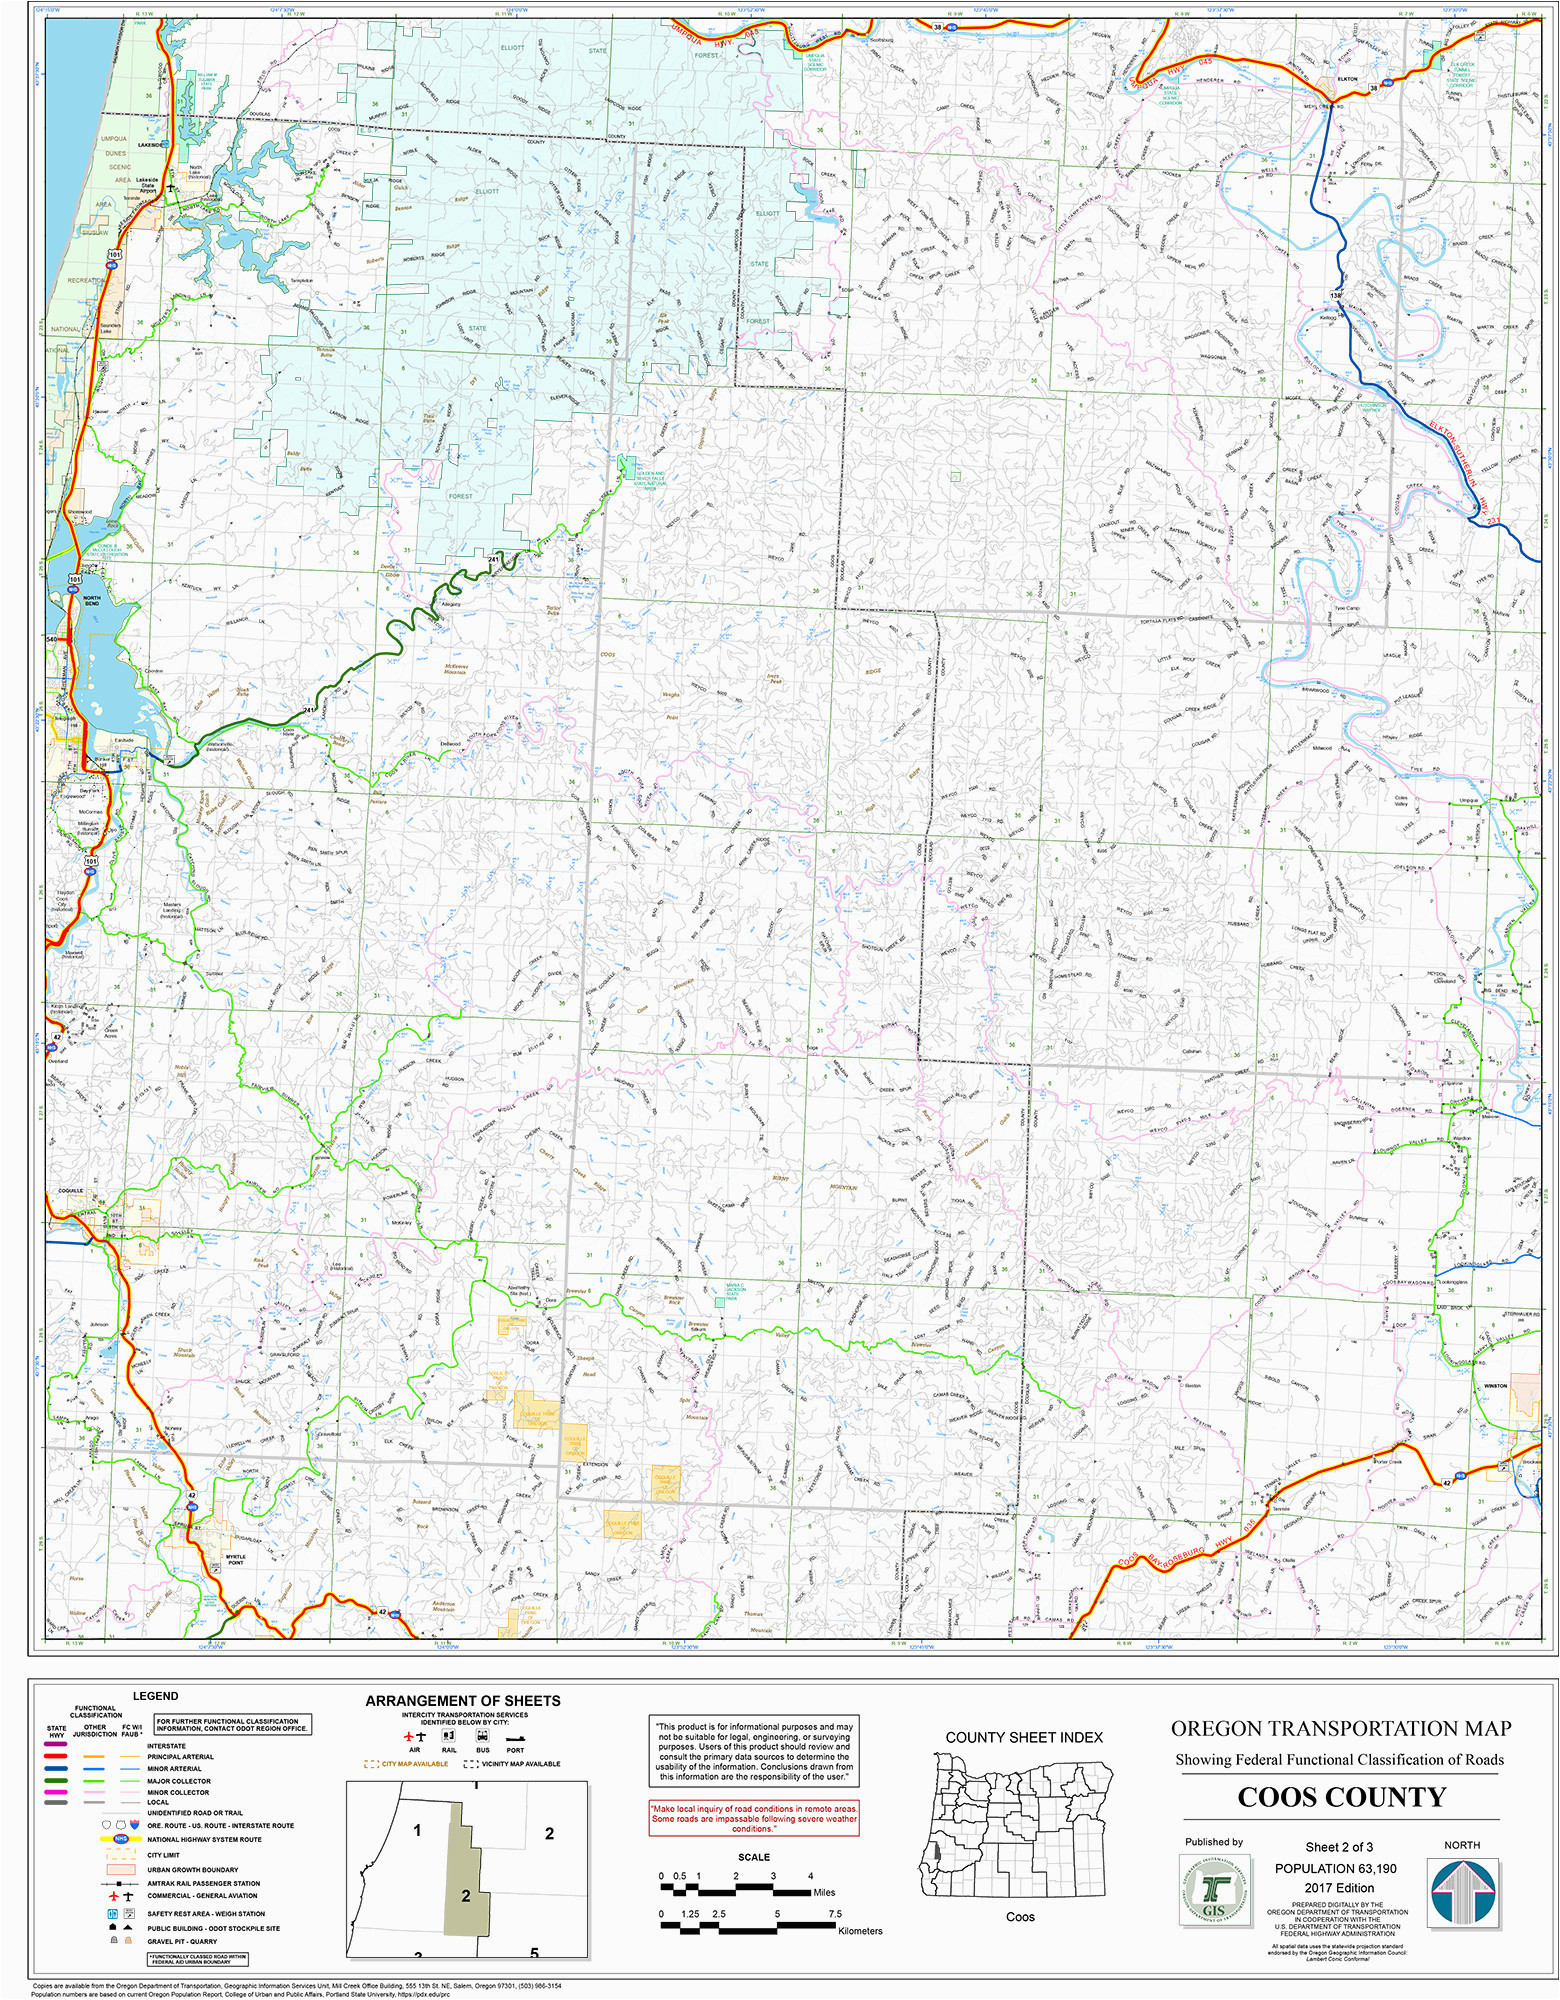 Printable Map Of Alabama with Cities Google Maps Alabama ...